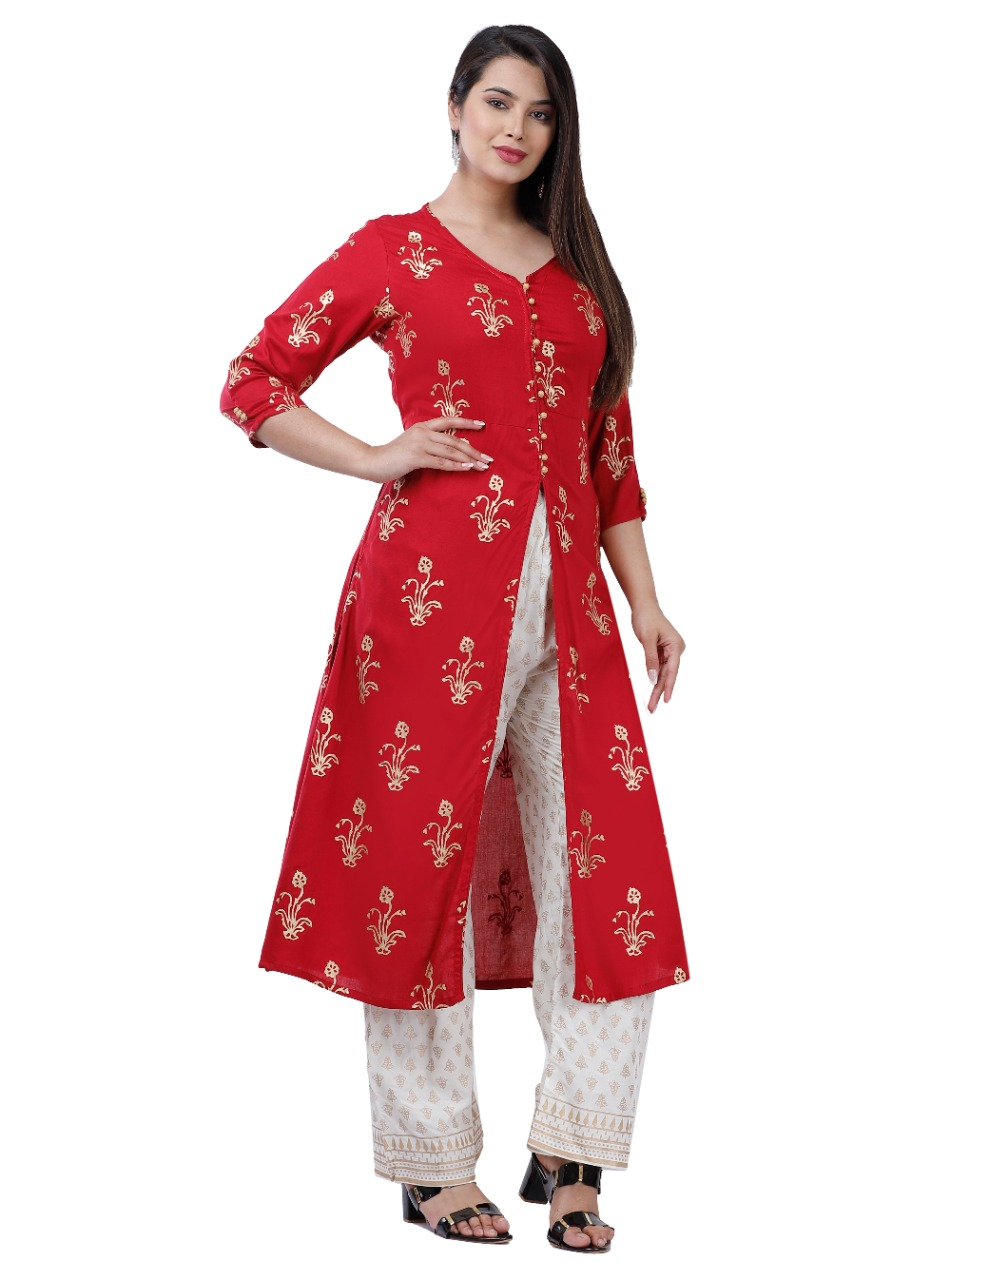 Samridhi Collections Women's Clothing